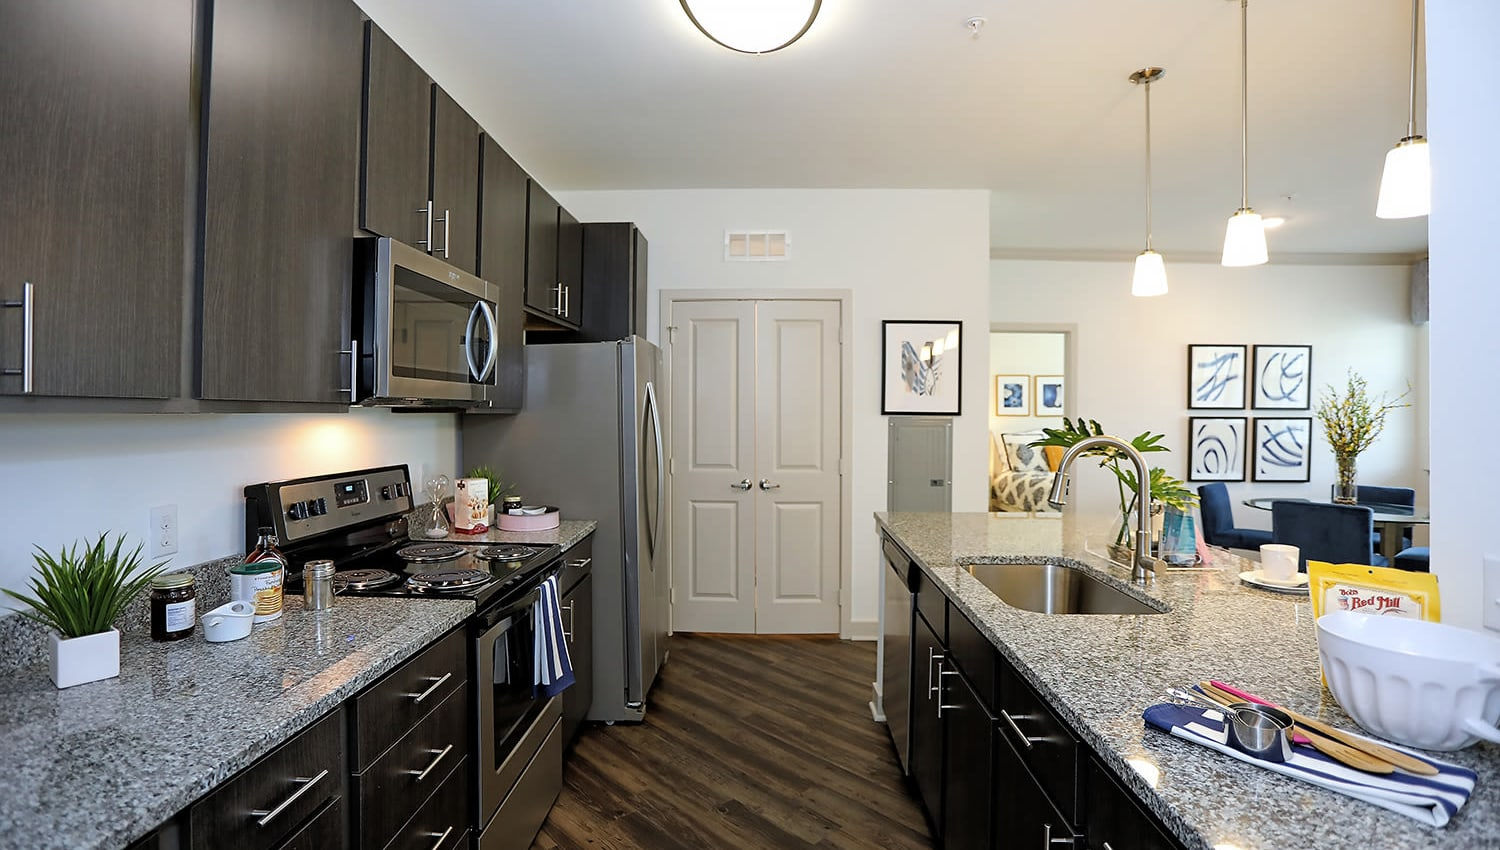 Model apartment kitchen with hardwood flooring at The Slate in Savannah, Georgia